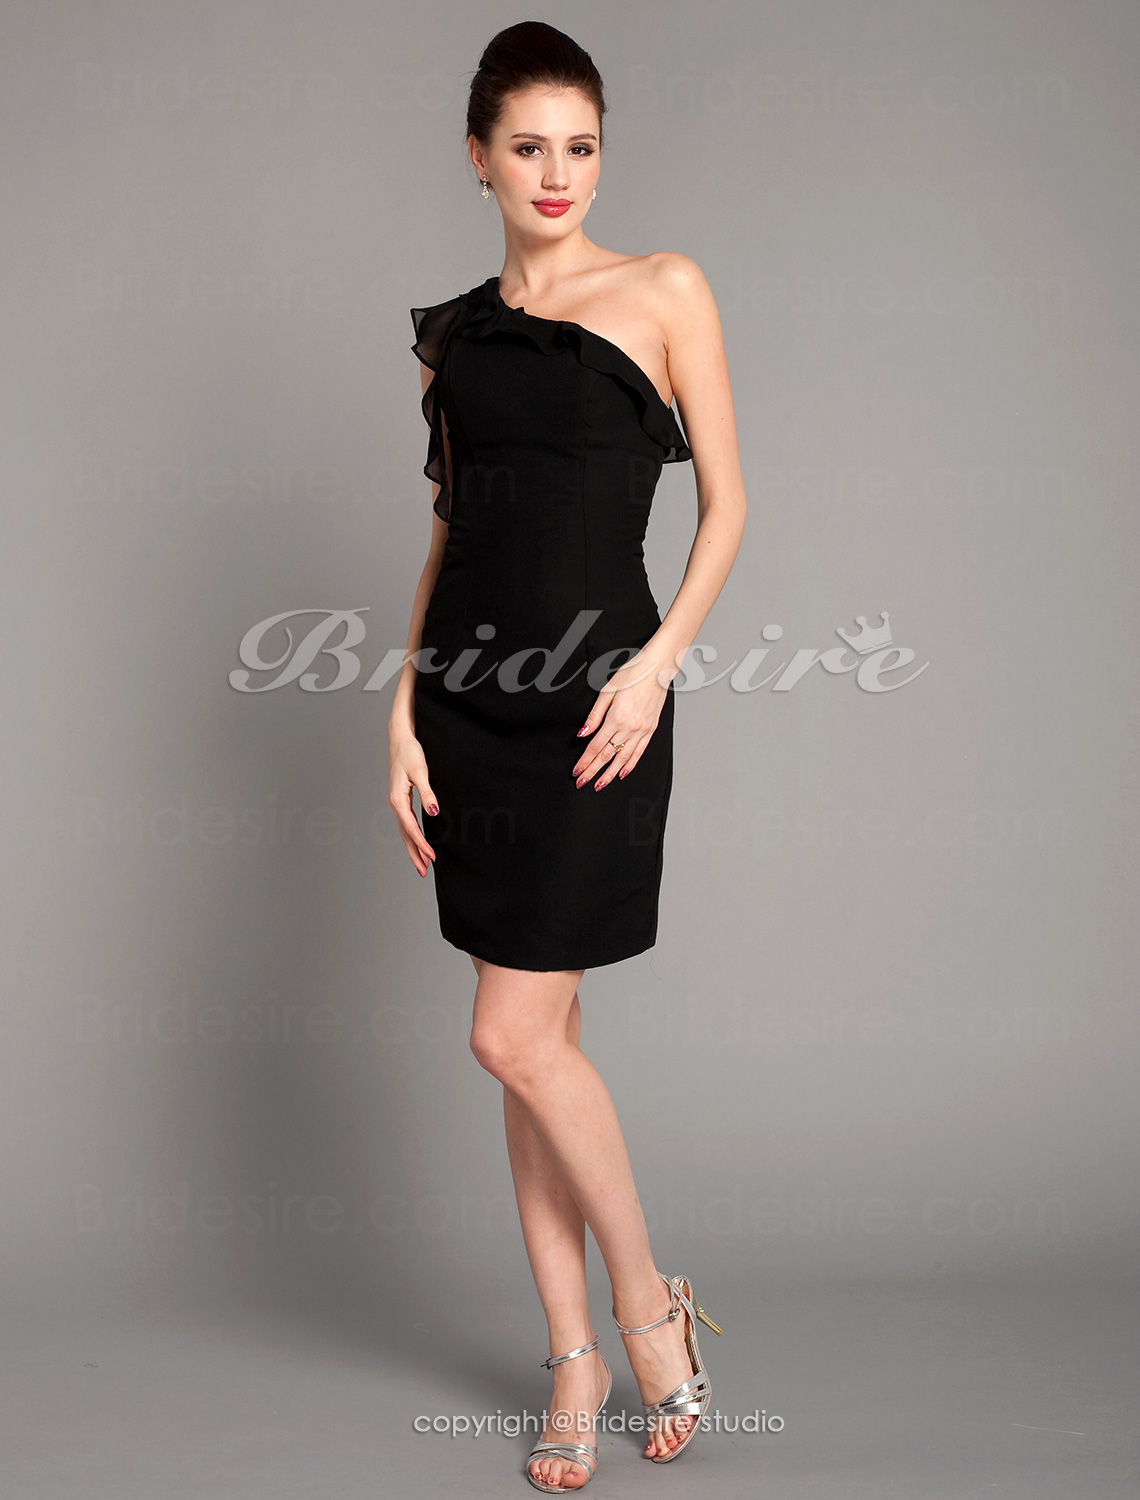 Sheath/ Column Chiffon Short/ Mini One Shoulder Cocktail/ Homecoming Dress